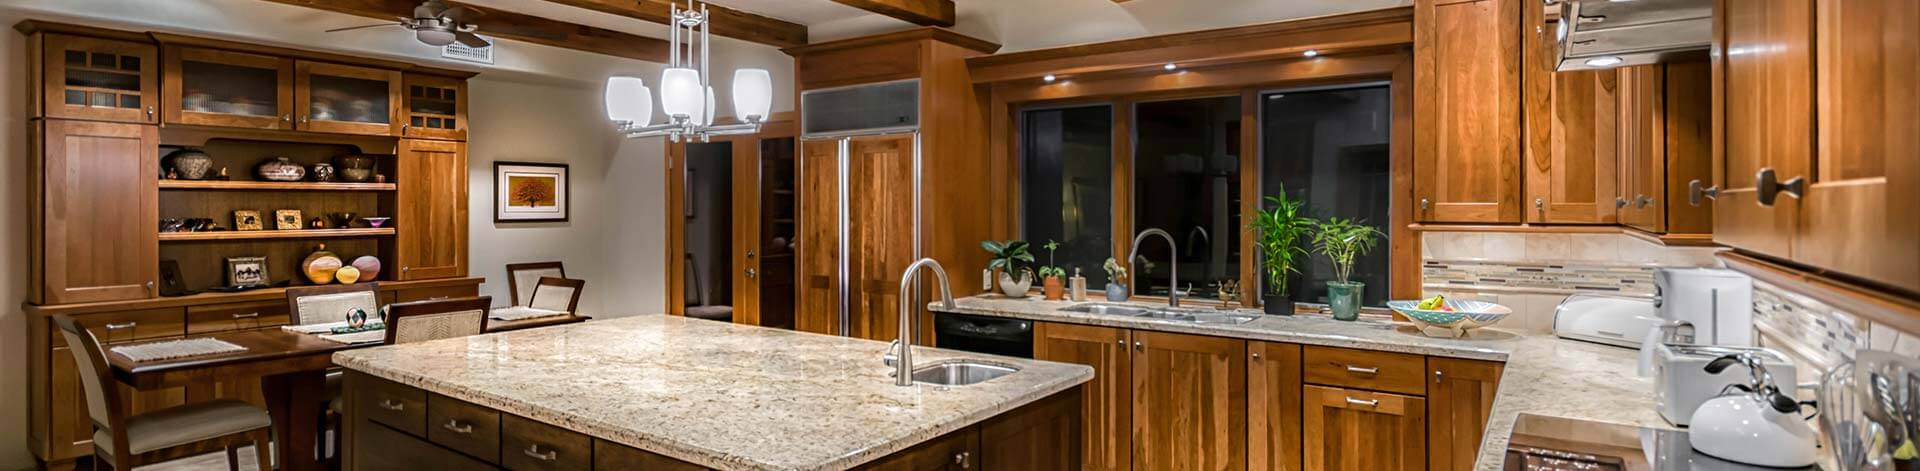 Best Kitchen Remodeler Phoenix Arizona Republic West Remodeling Phoenix